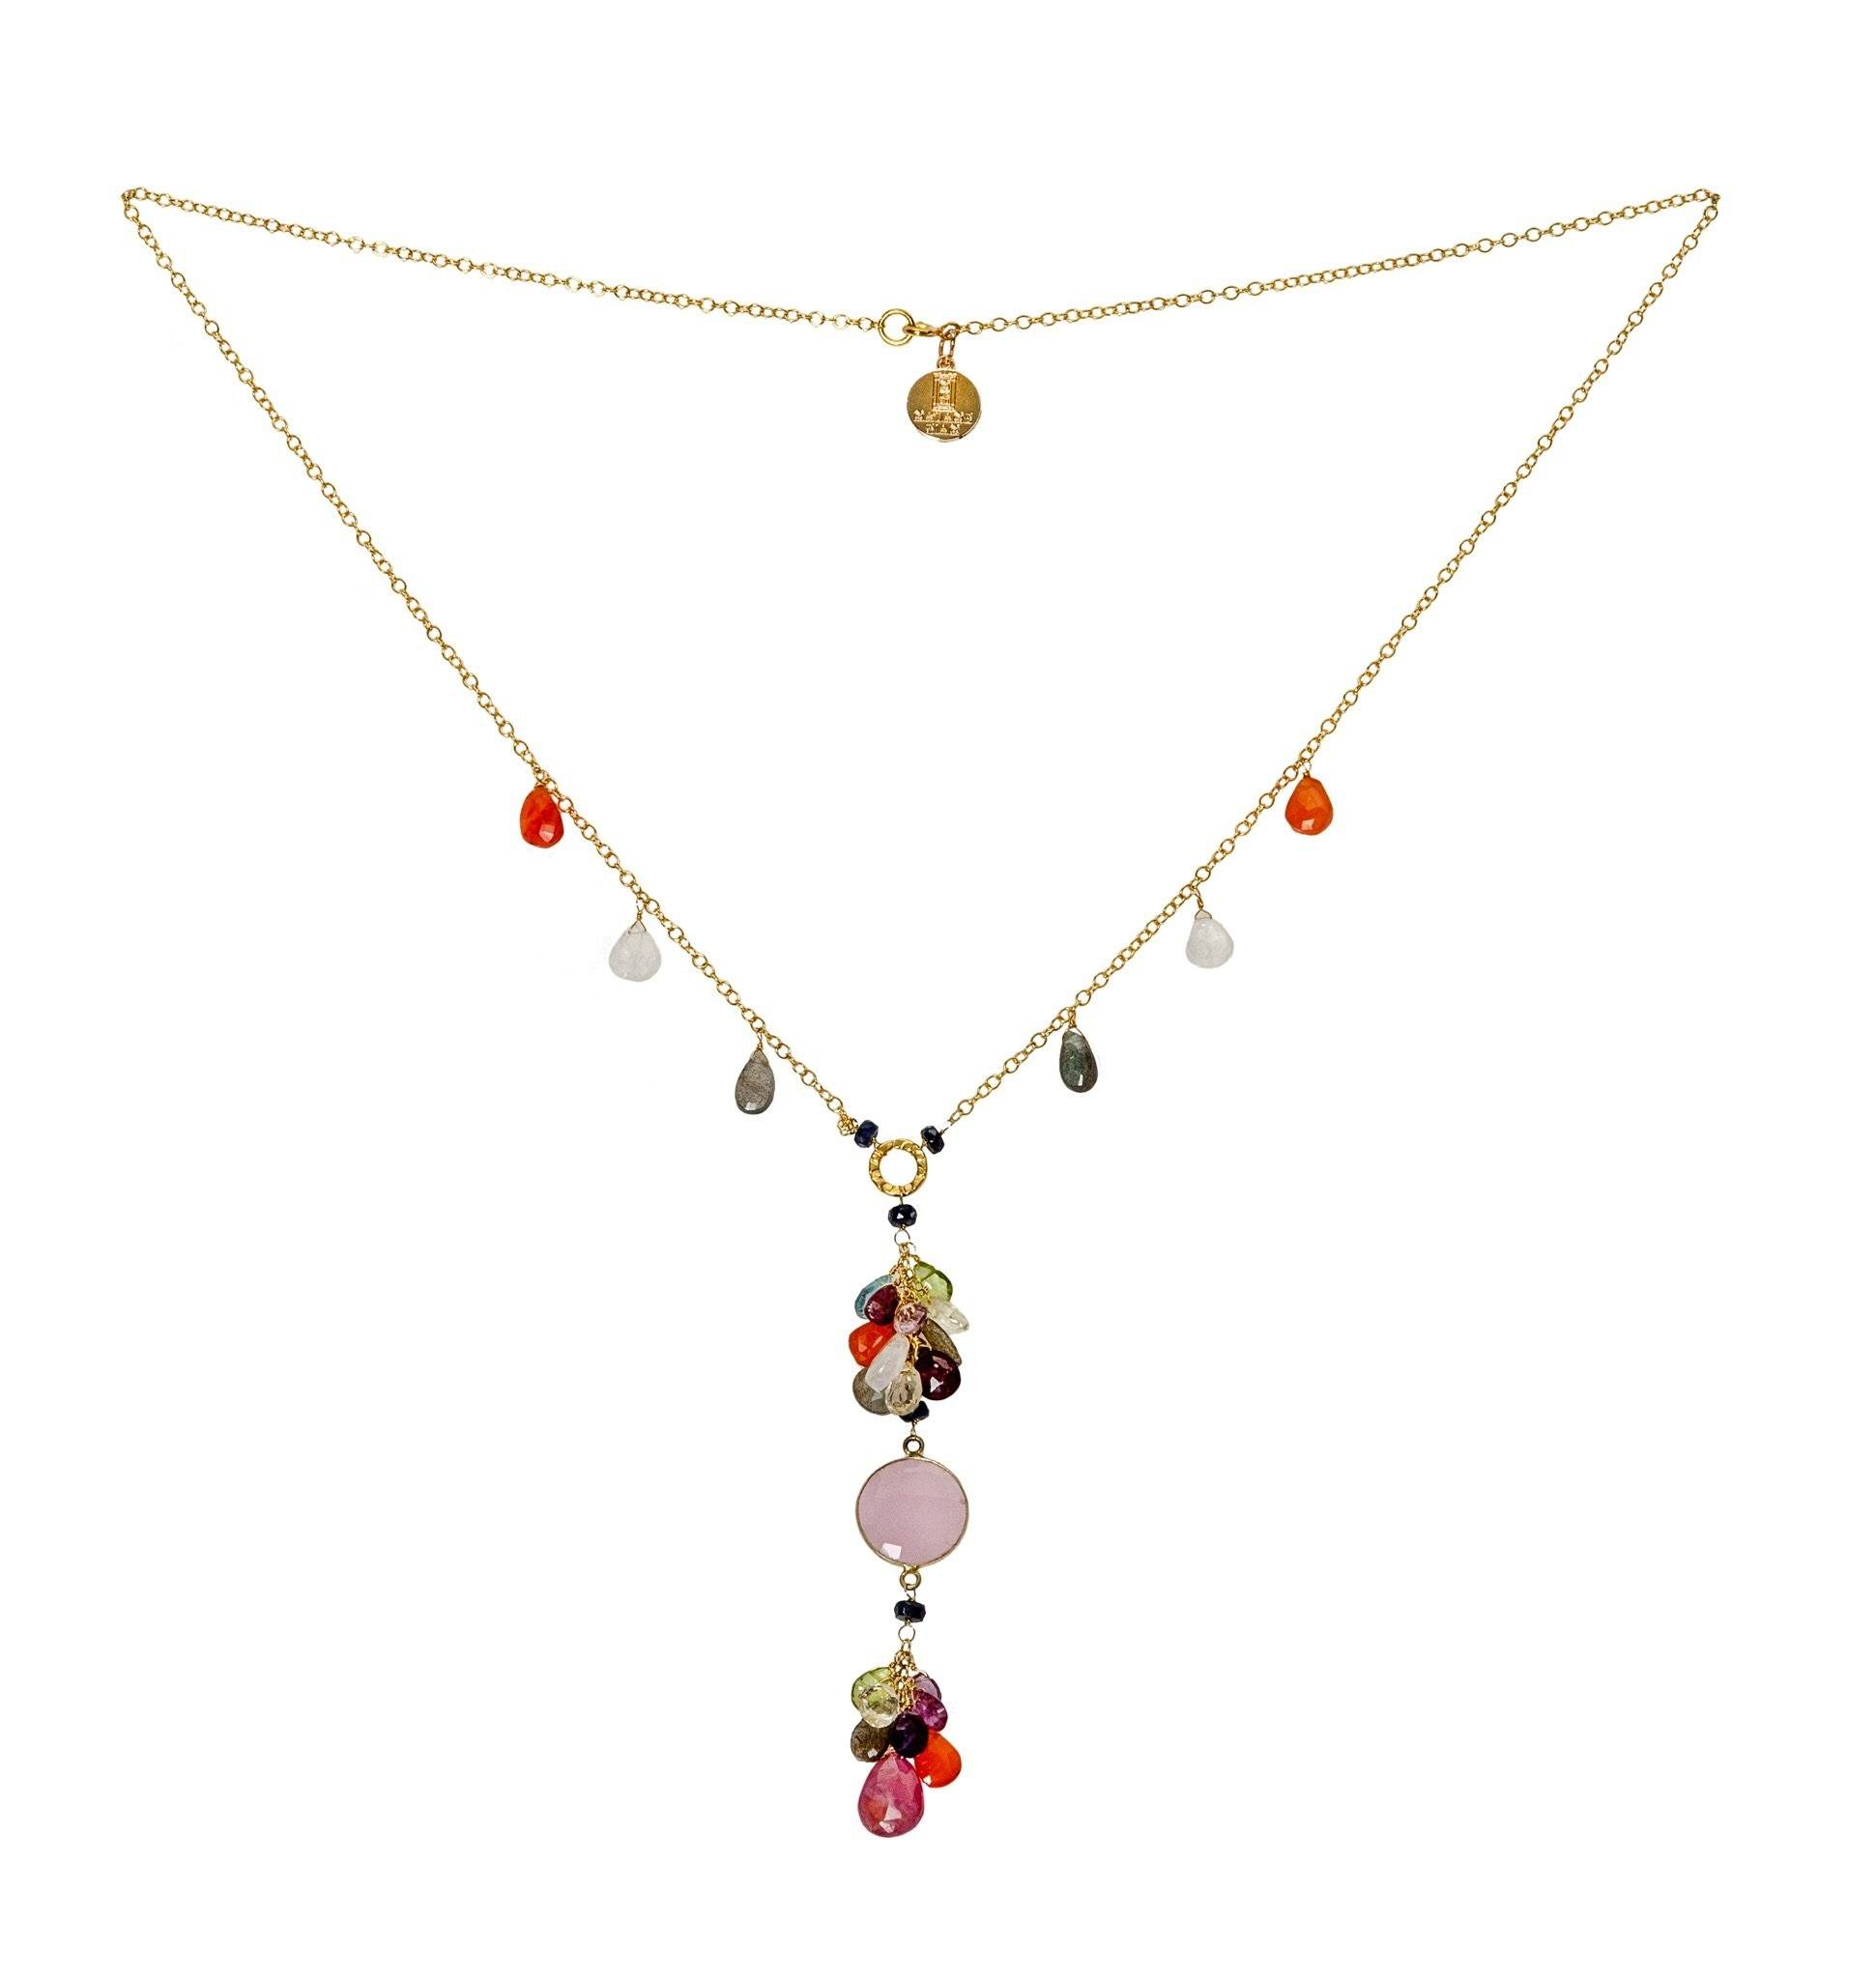 ROSA opal necklace with drops - MadamSiam